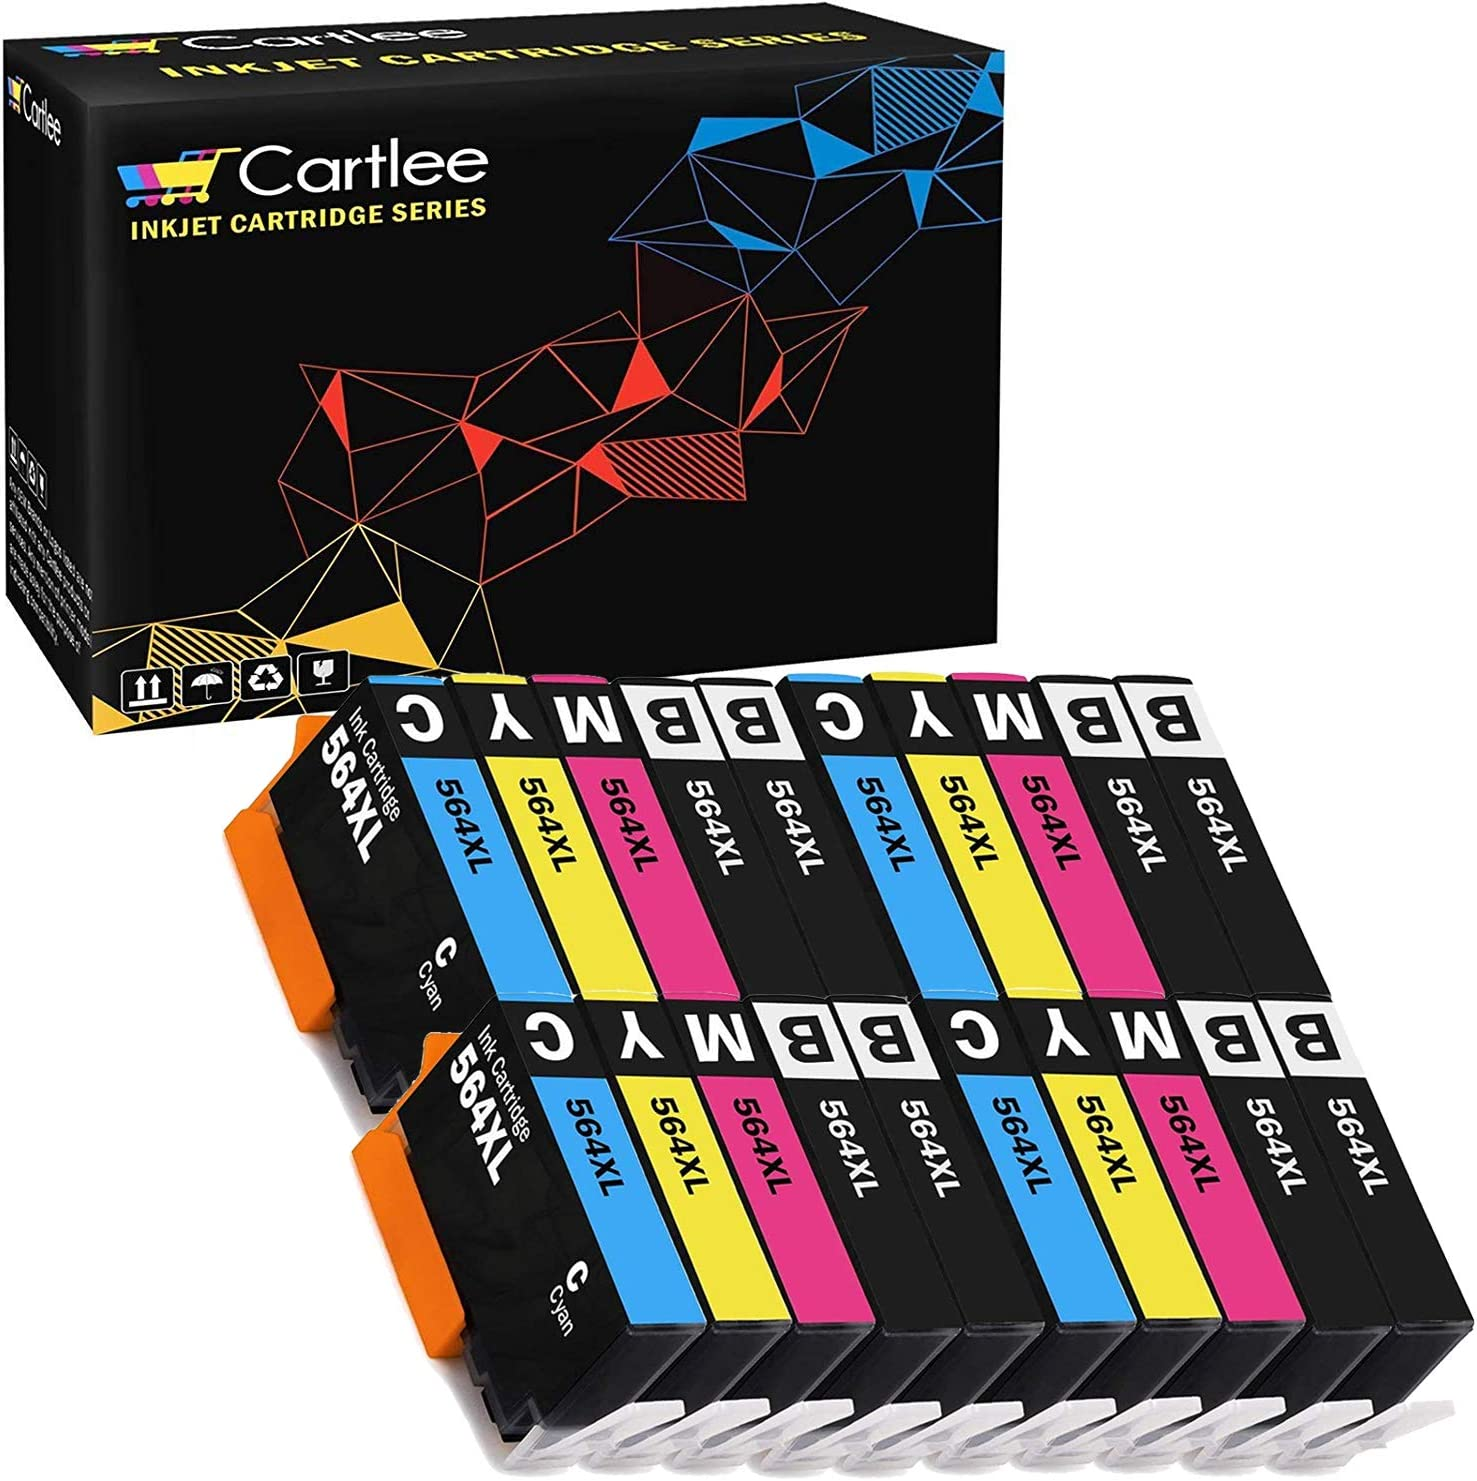 Cartlee Set of 20 Remanufactured 564XL High Yield Ink Cartridges for HP Photosmart 5510 5520 6510 6520 6525 7510 7520 7525 B8550 C6380 D7560 Premium C309A C410 Officejet 4620 Deskjet 3520